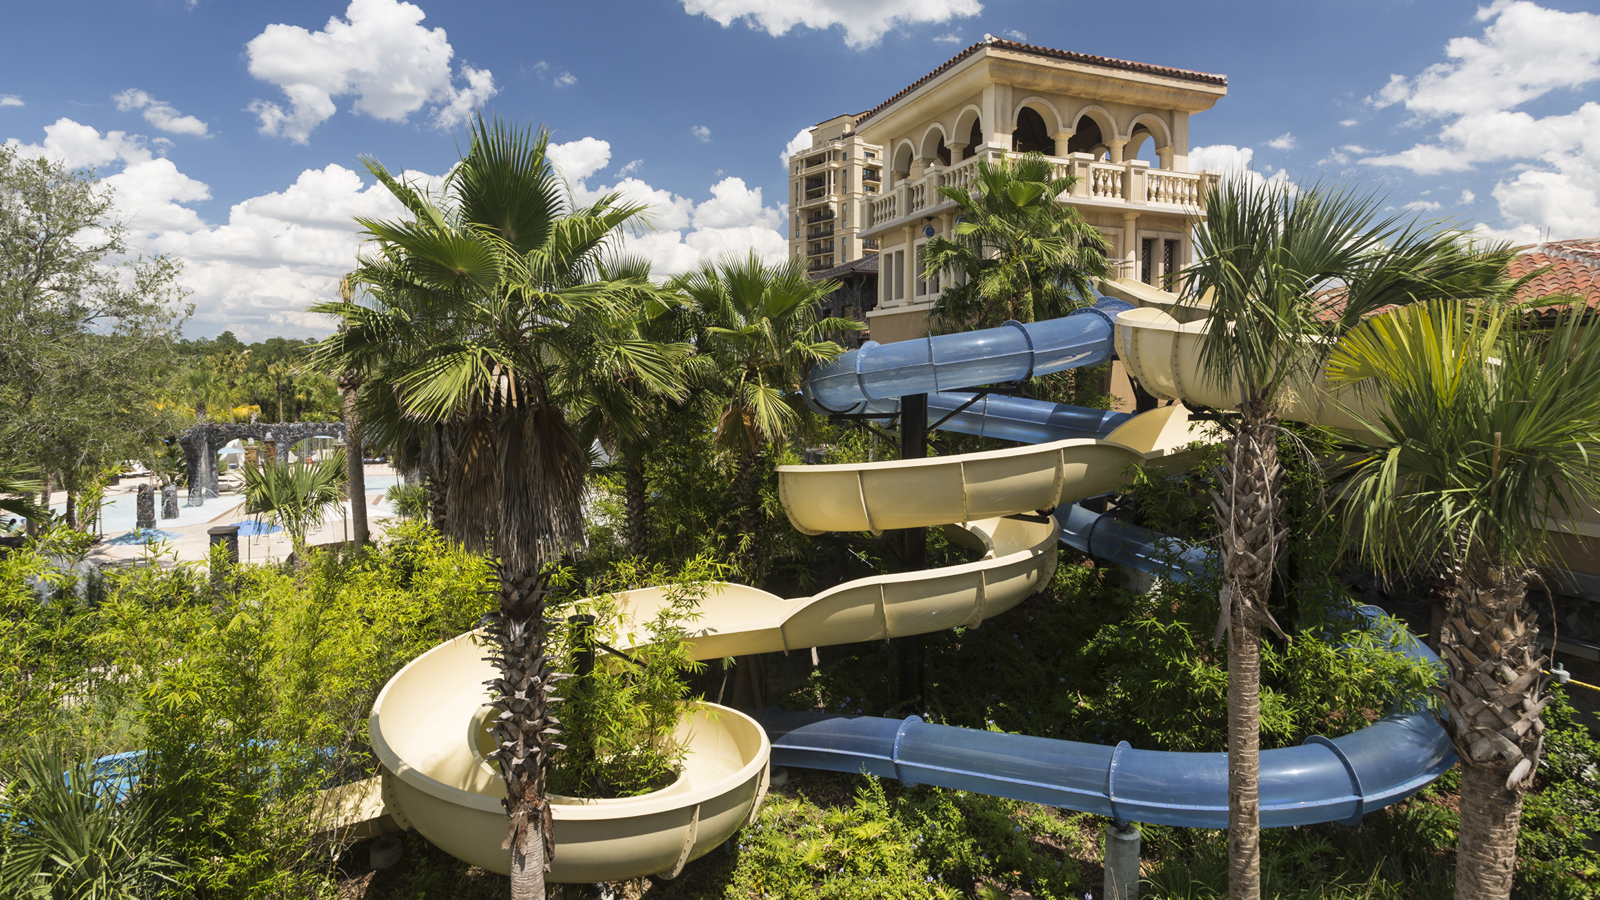 Top Florida Family Hotels by Four Seasons!